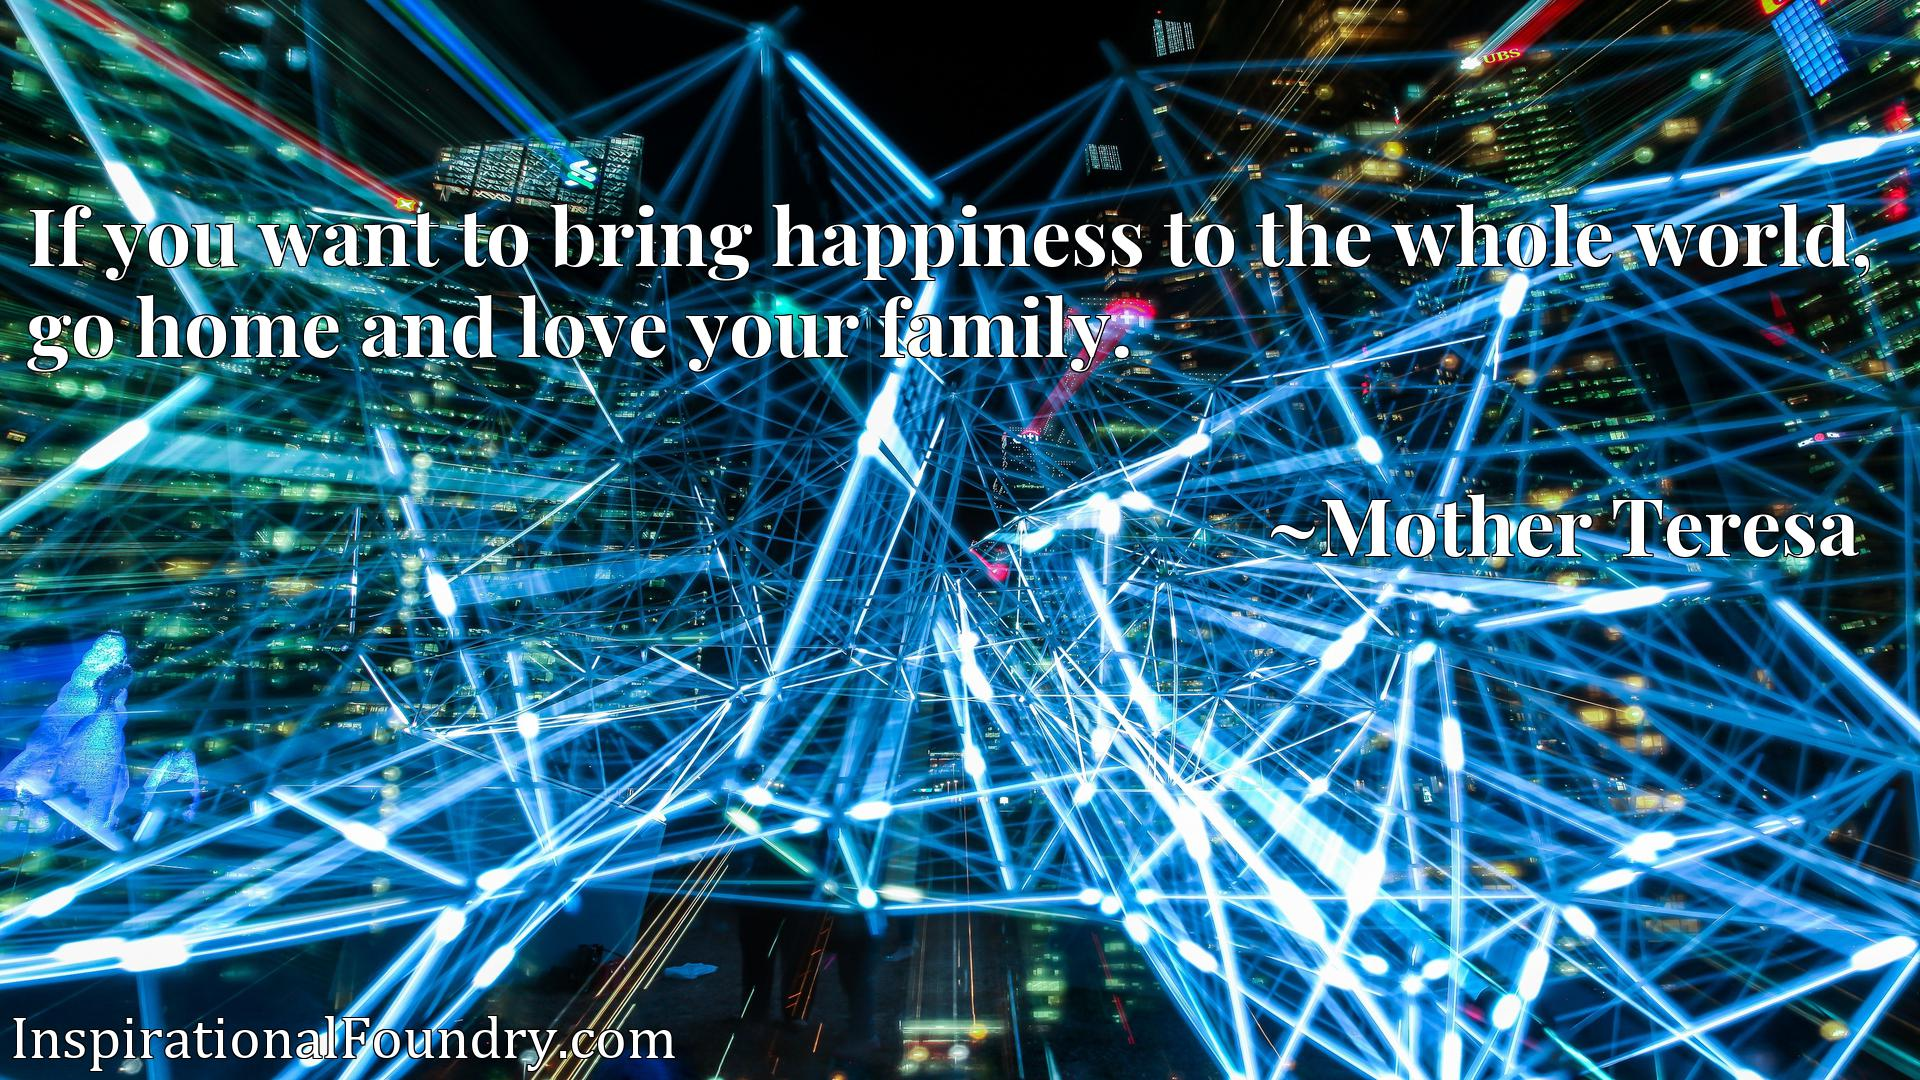 Quote Picture :If you want to bring happiness to the whole world, go home and love your family.